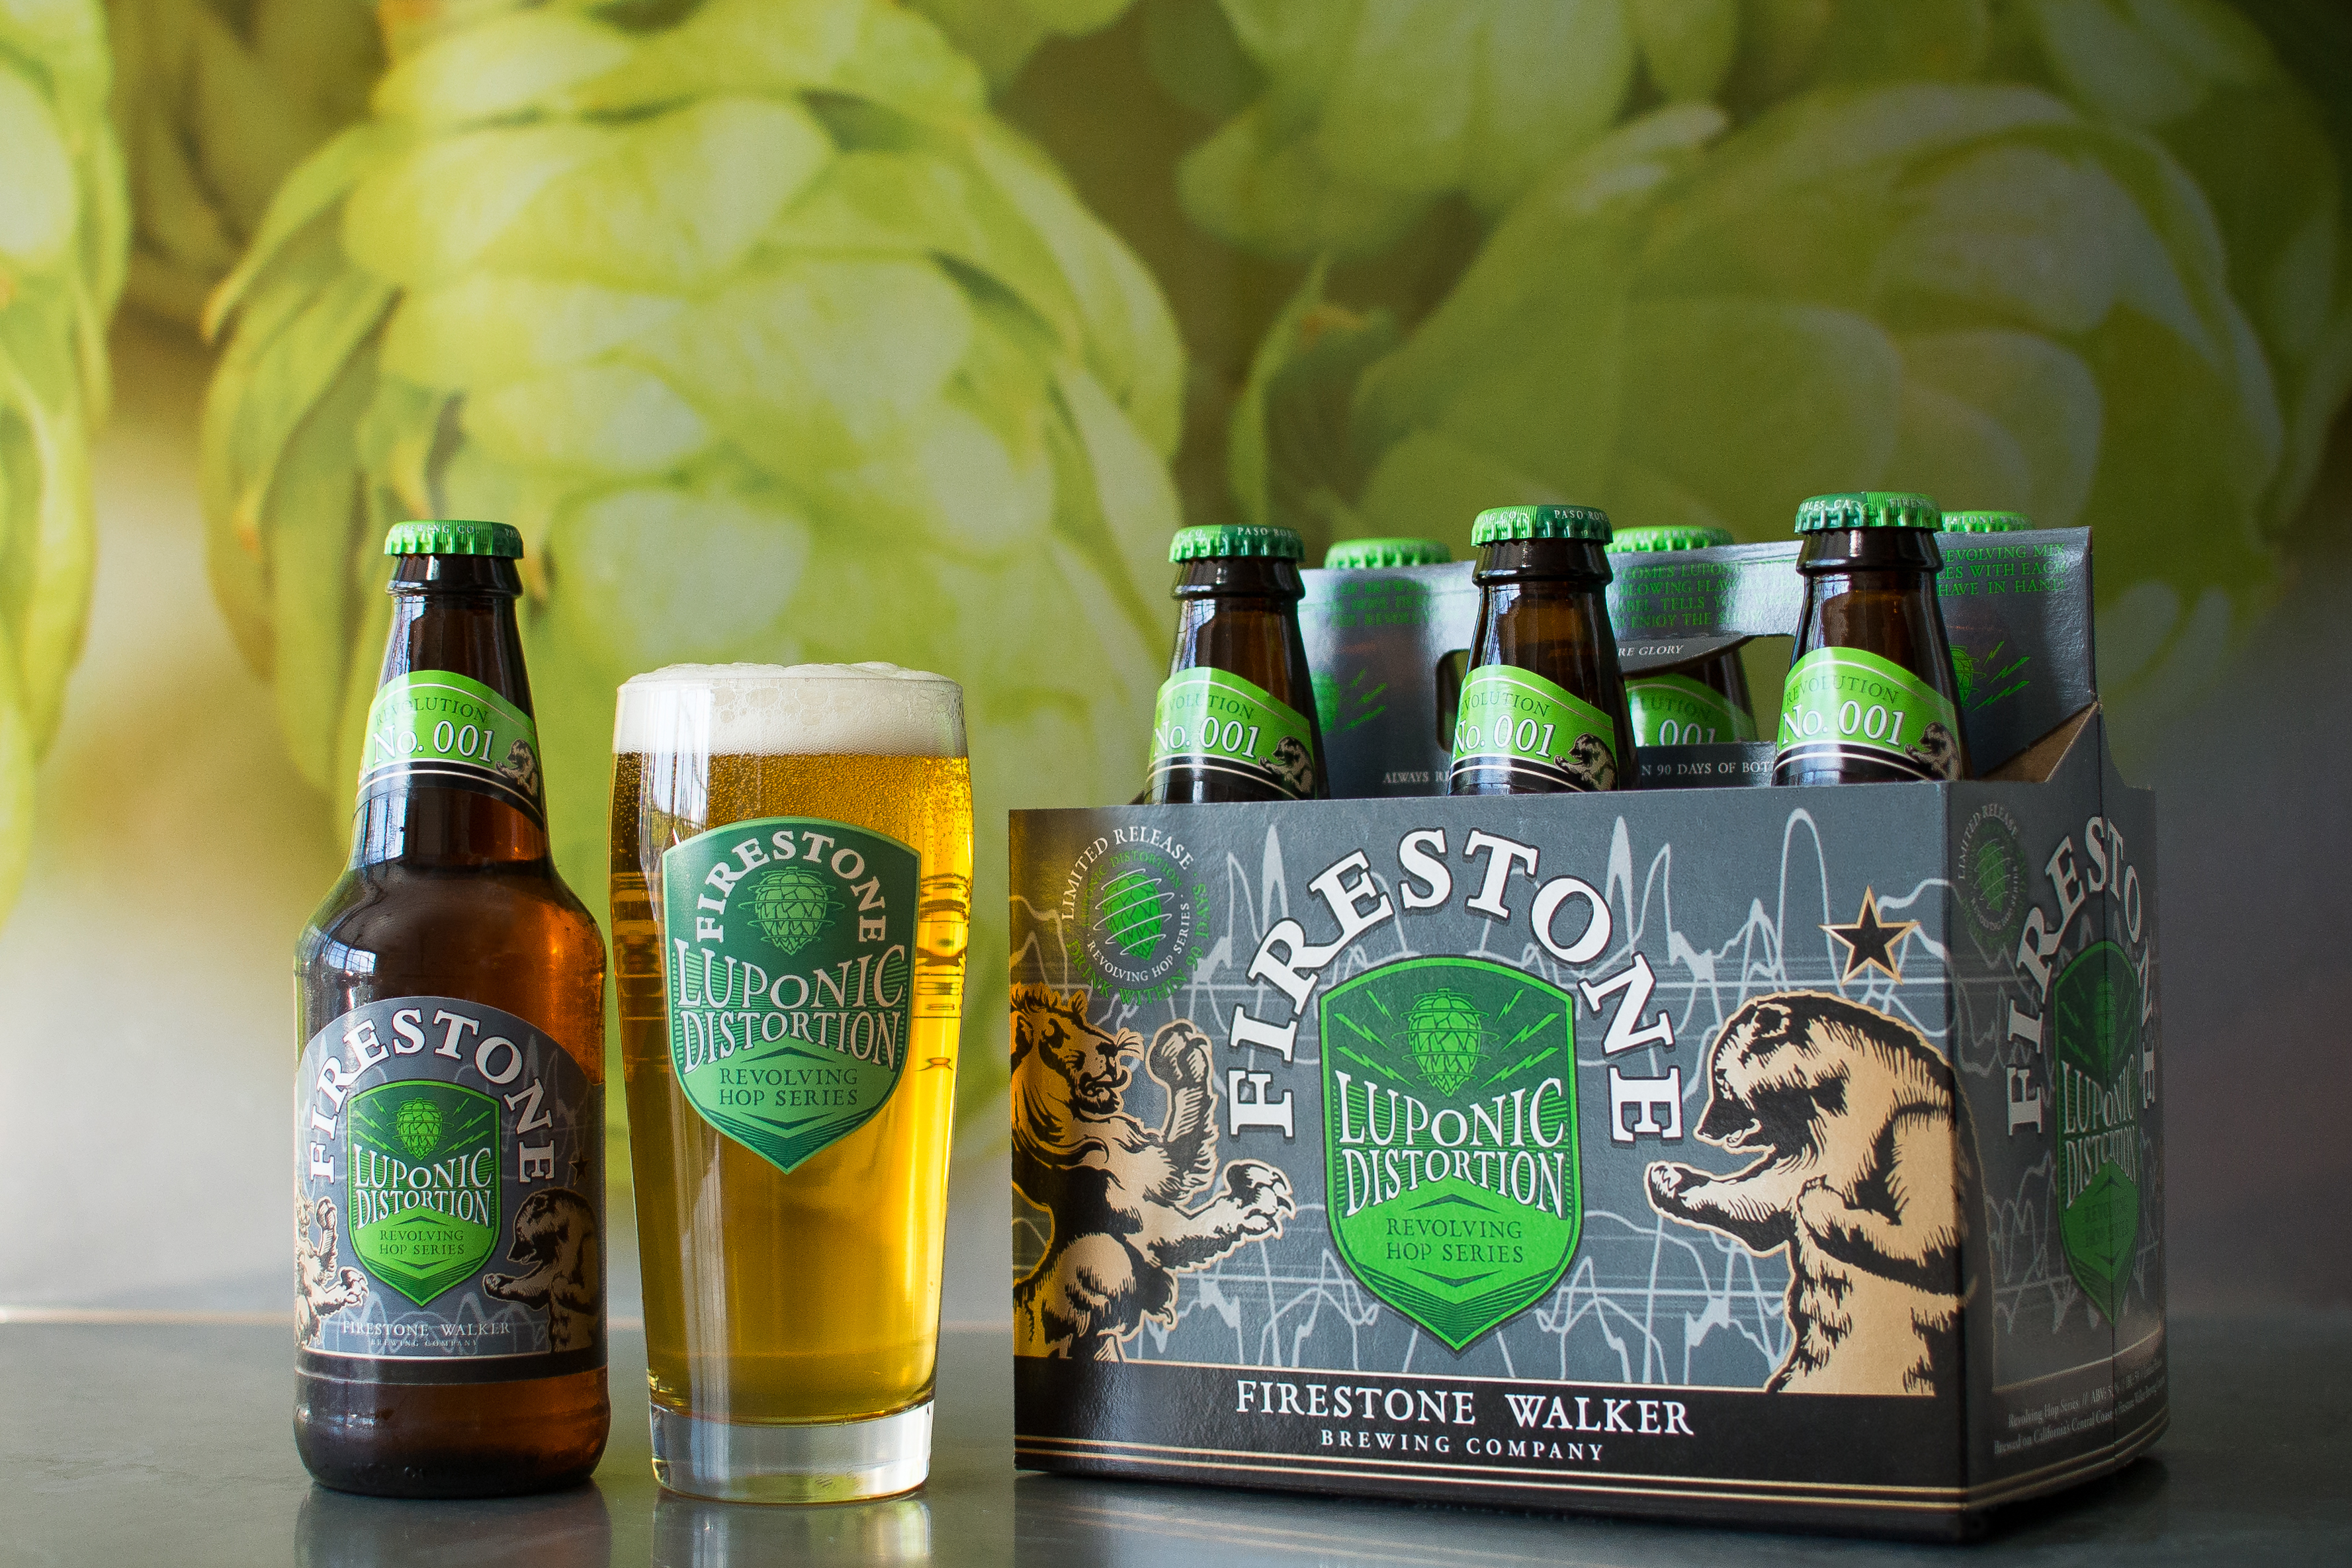 Luponic Distortion No.001 6 Pack (image courtesy of Firestone Walker)